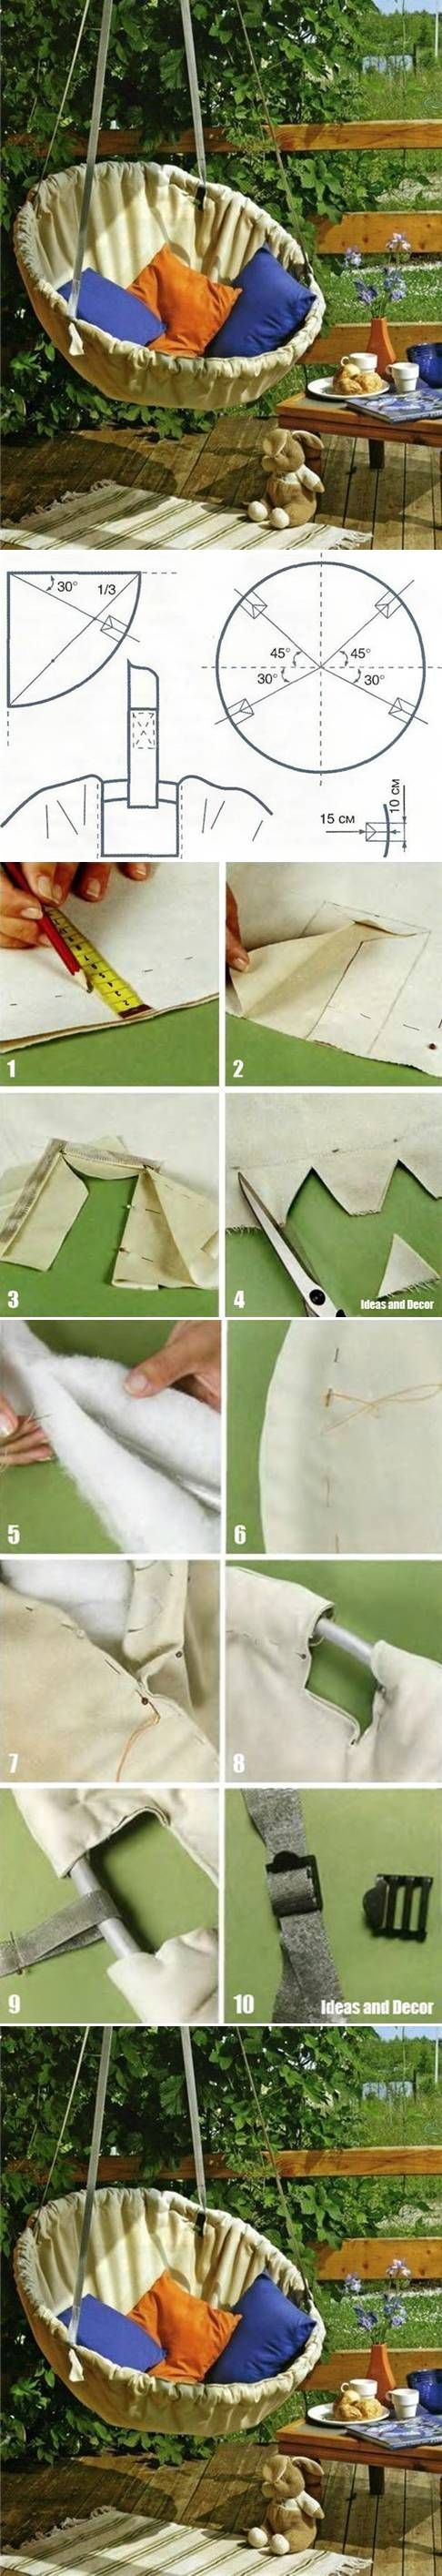 How to make hammock chair step by step diy tutorial instructions how